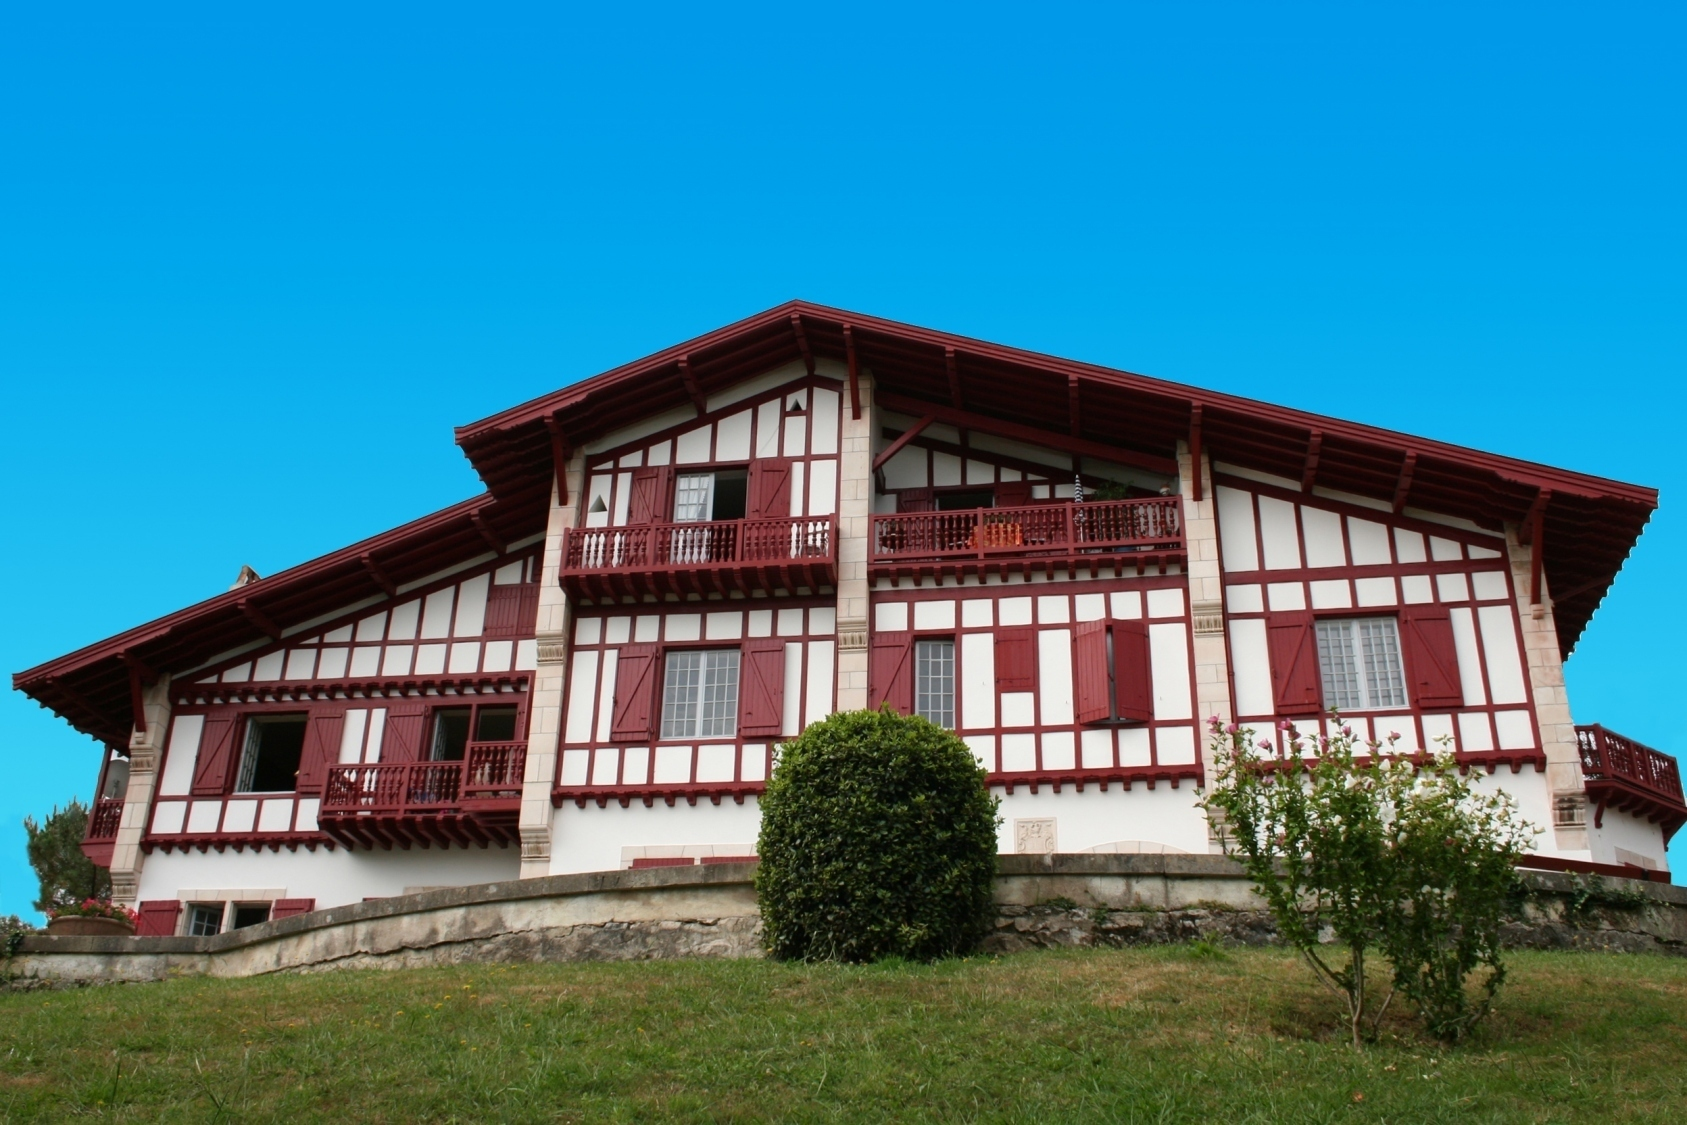 Achat Maison Pays Basque Immobilier Au Pays Basque Scoop It